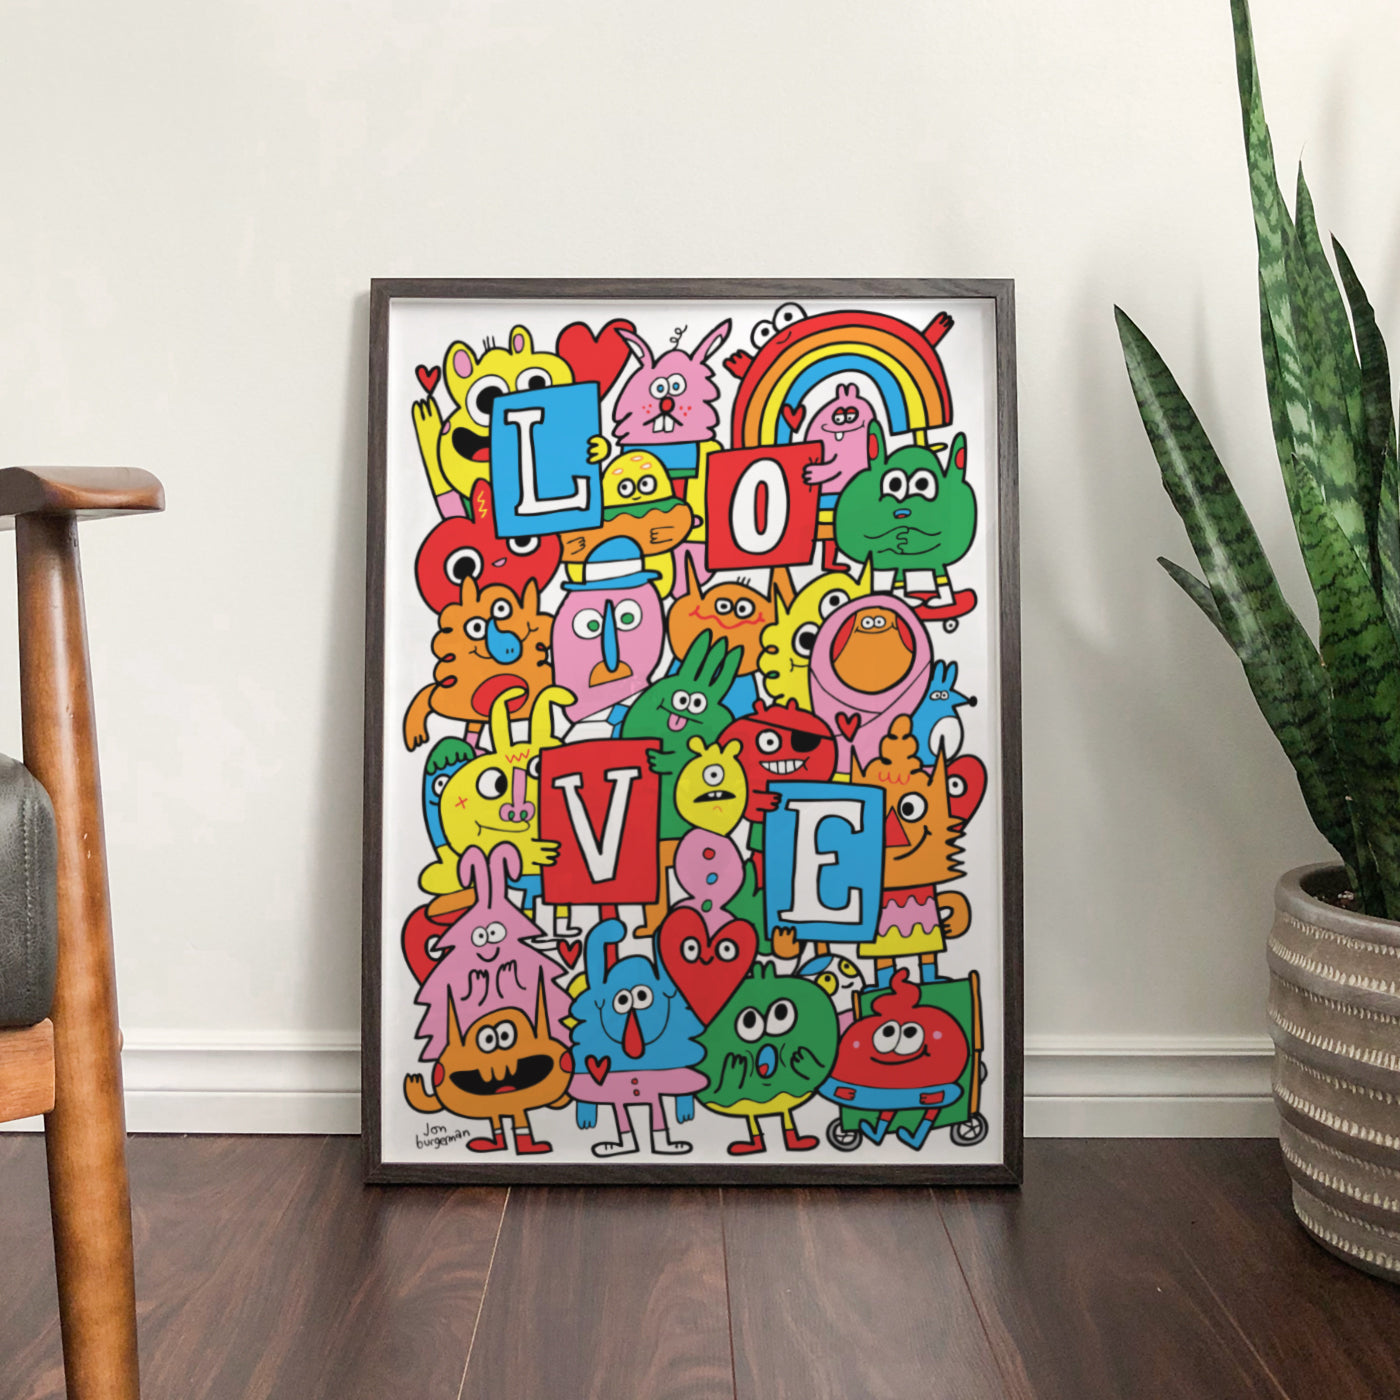 Jon Burgerman: Love